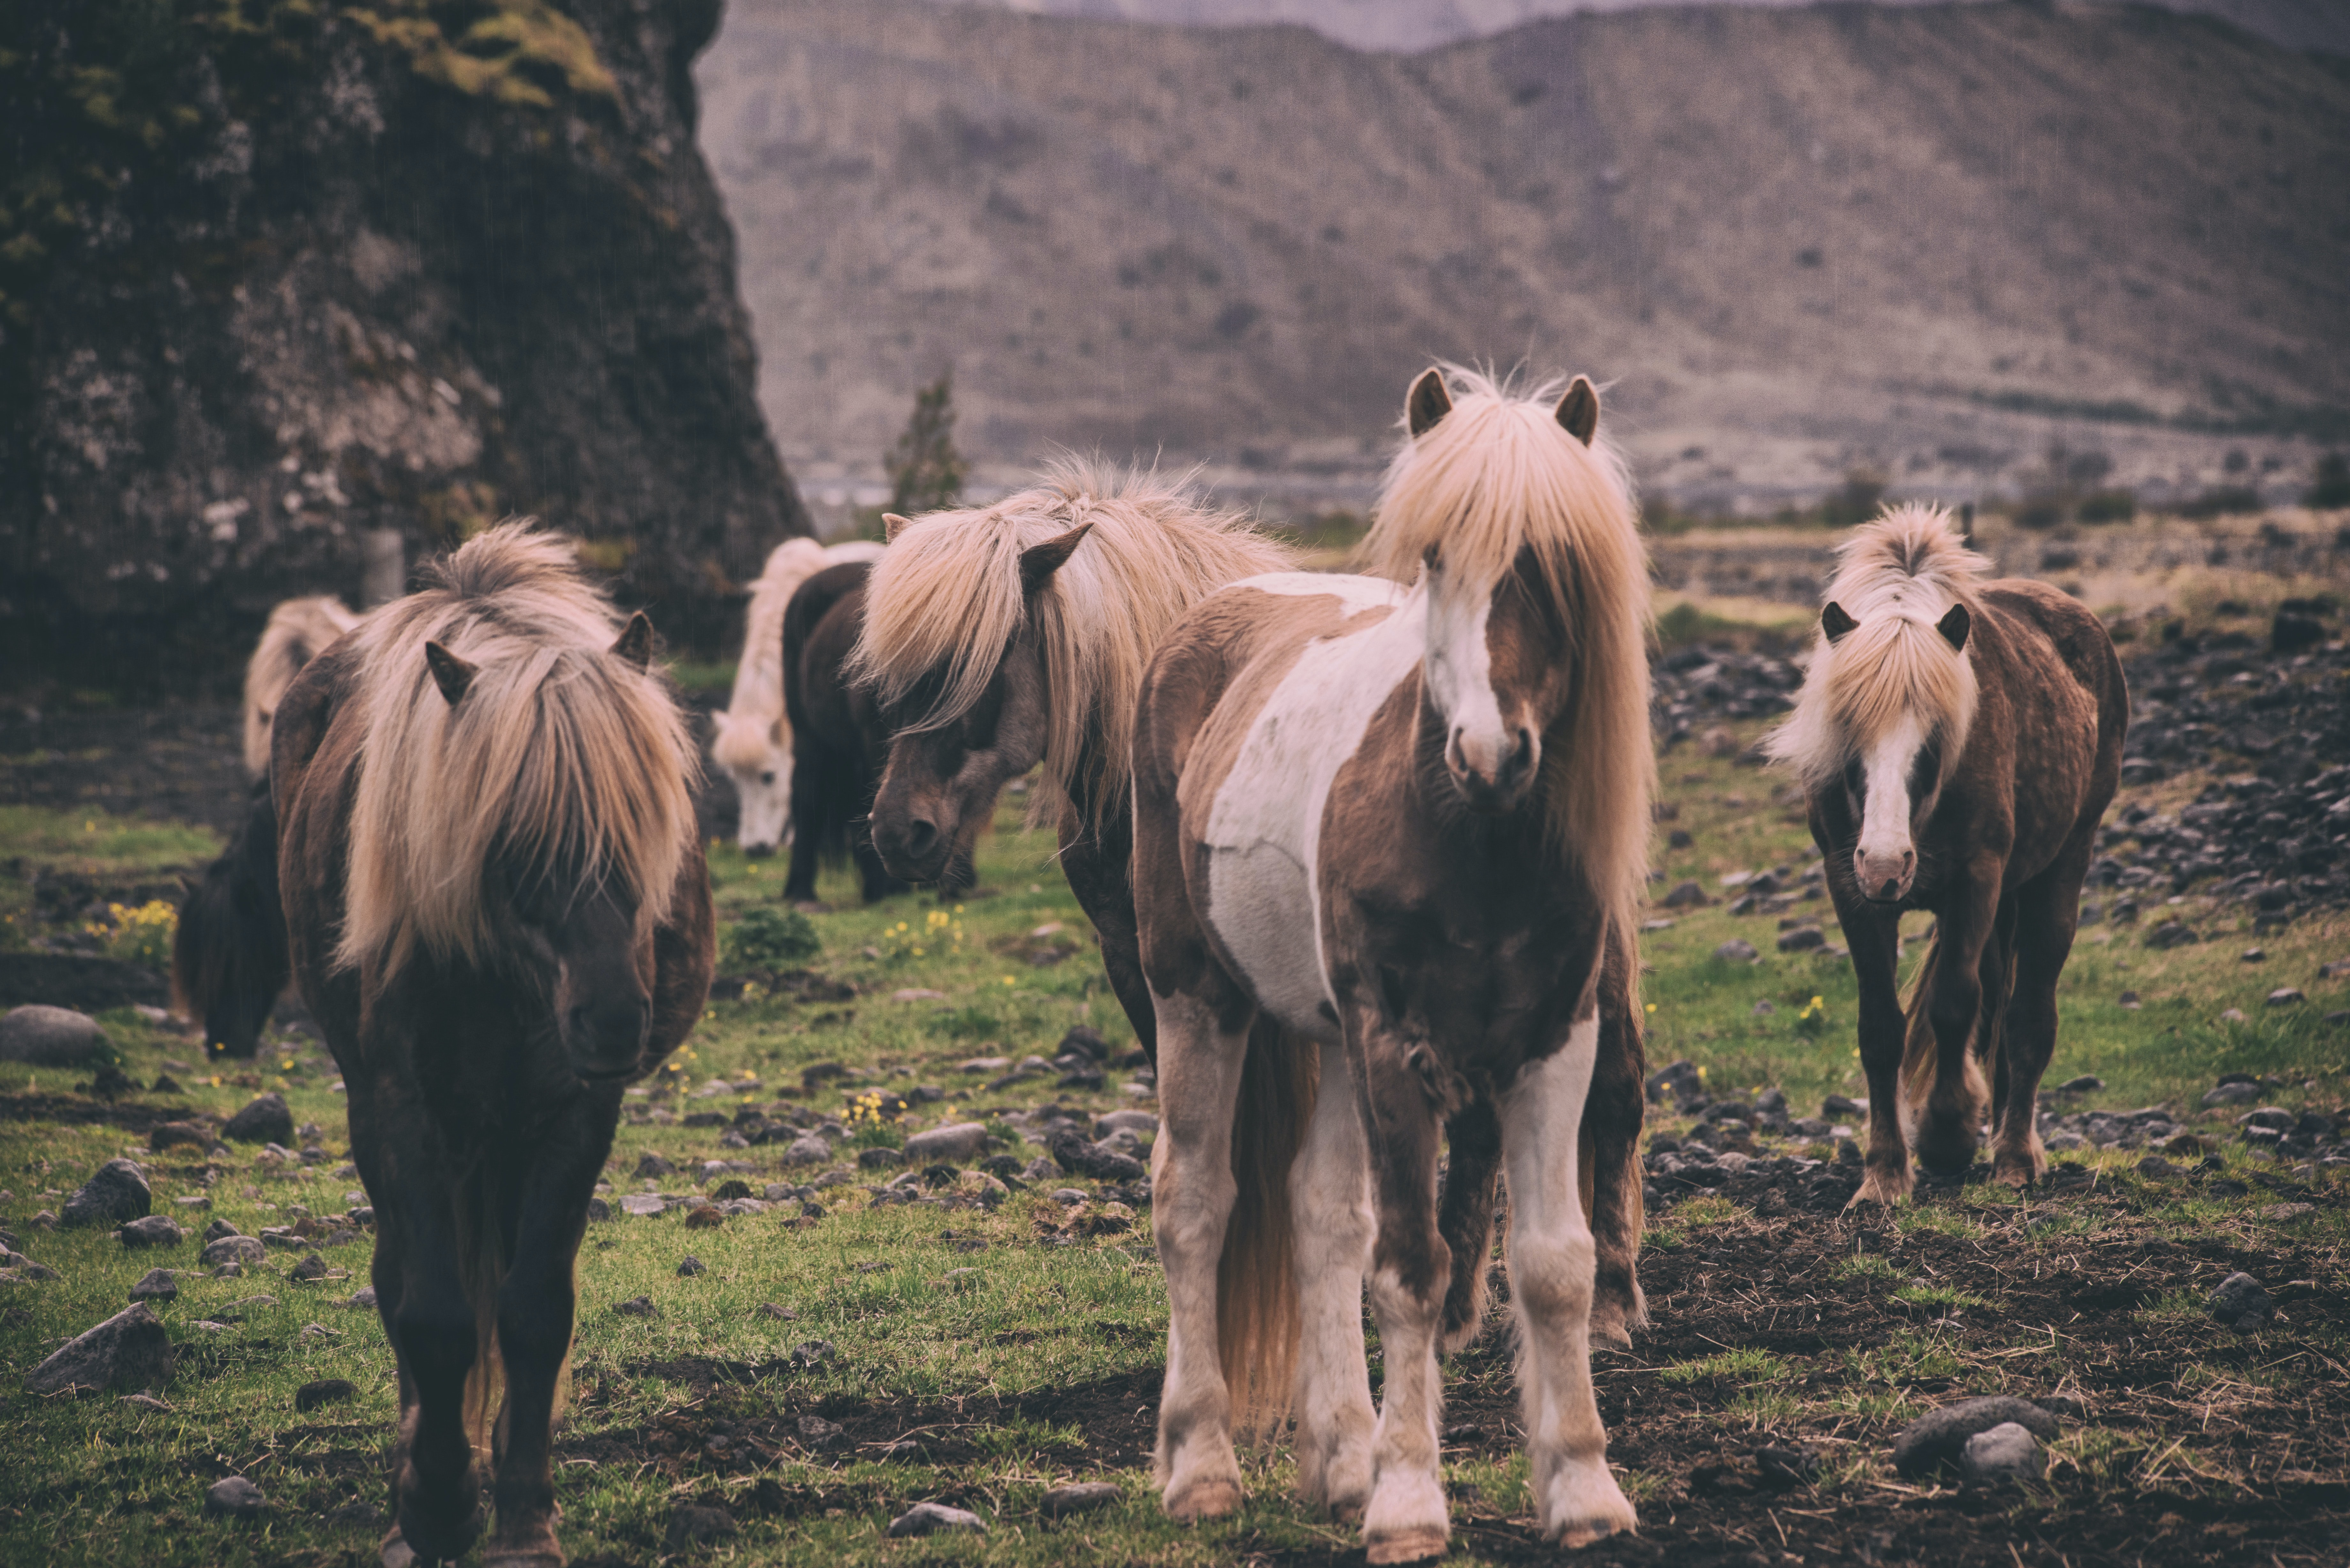 A herd of horses with long flaxen manes on a rocky plain under a rock face